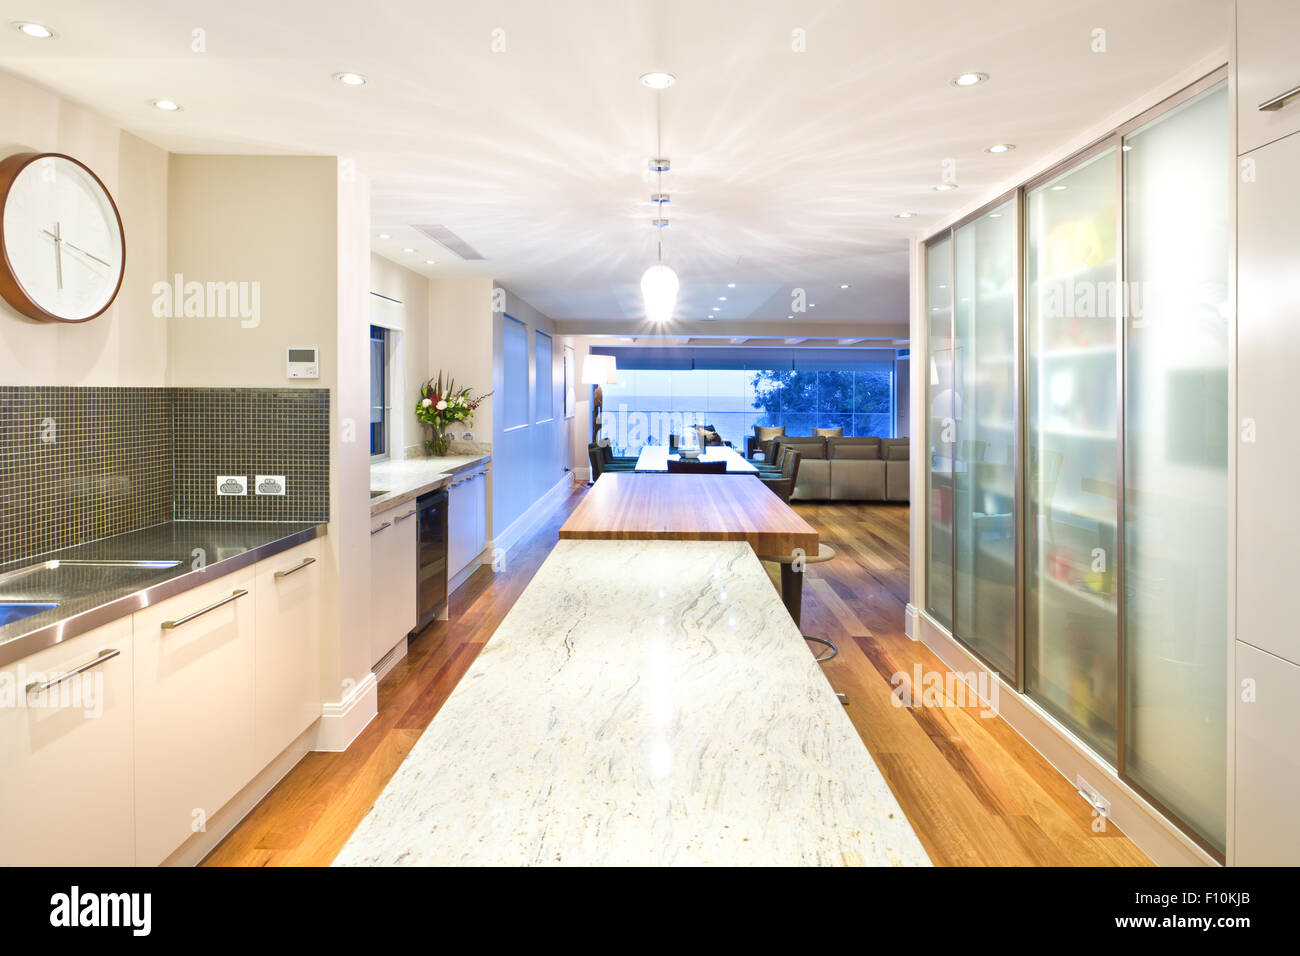 Extra long kitchen island and a table, situated in the middle of a ...